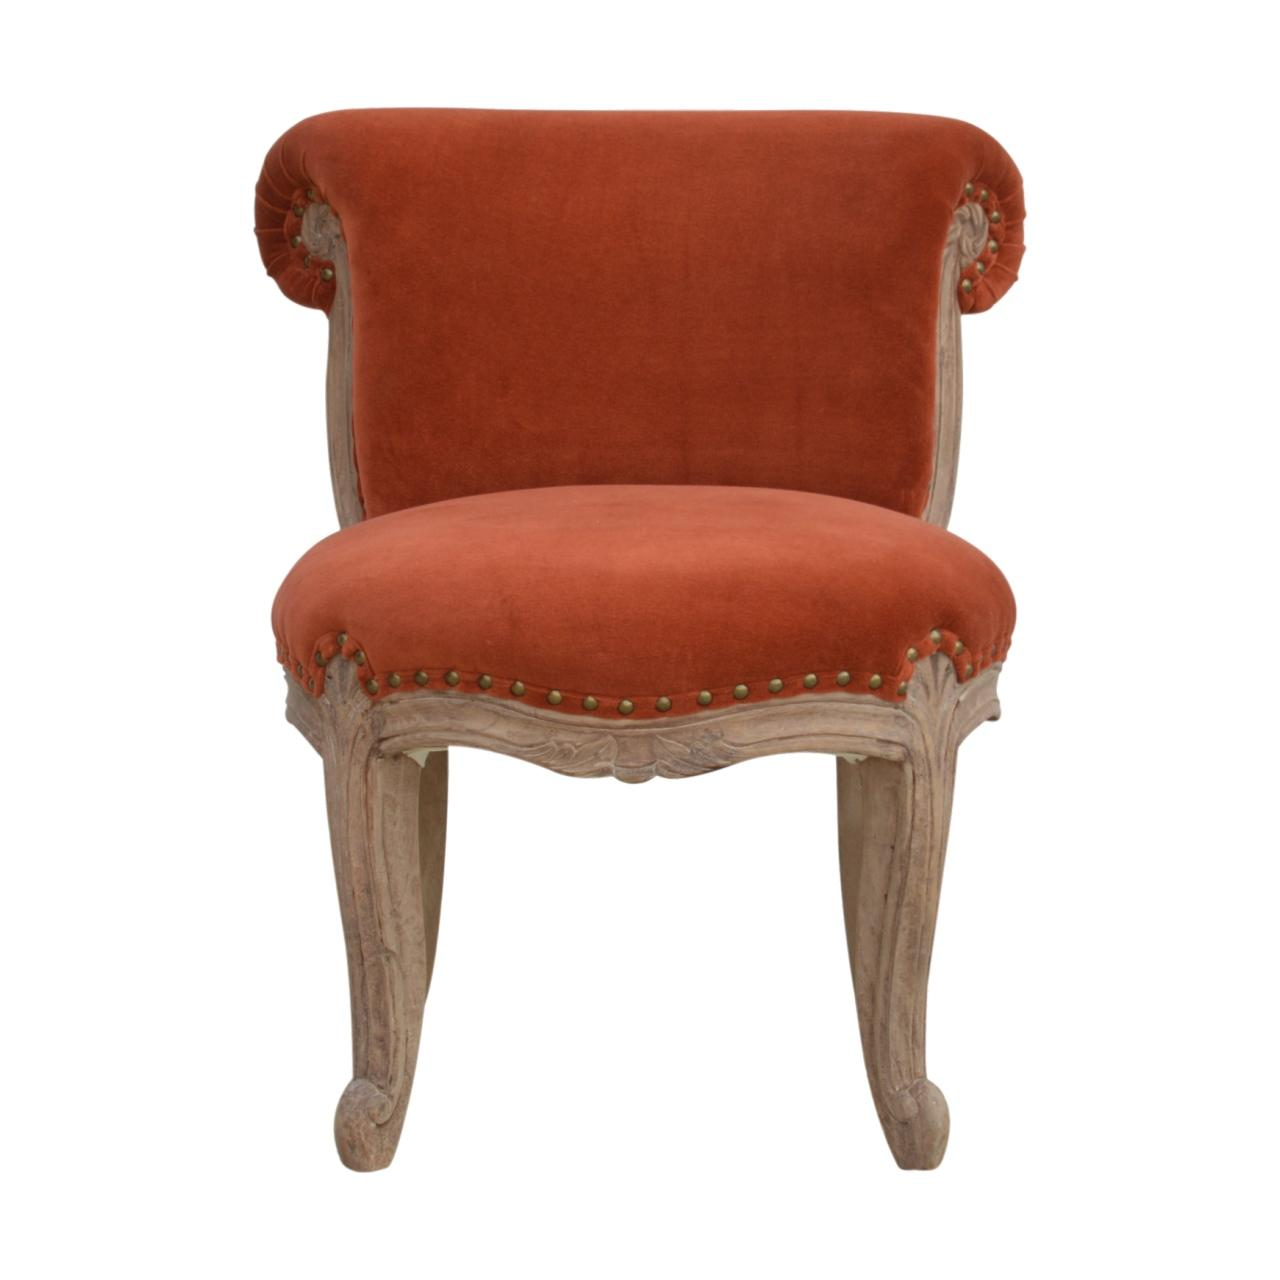 Brick Red Velvet Studded Chair